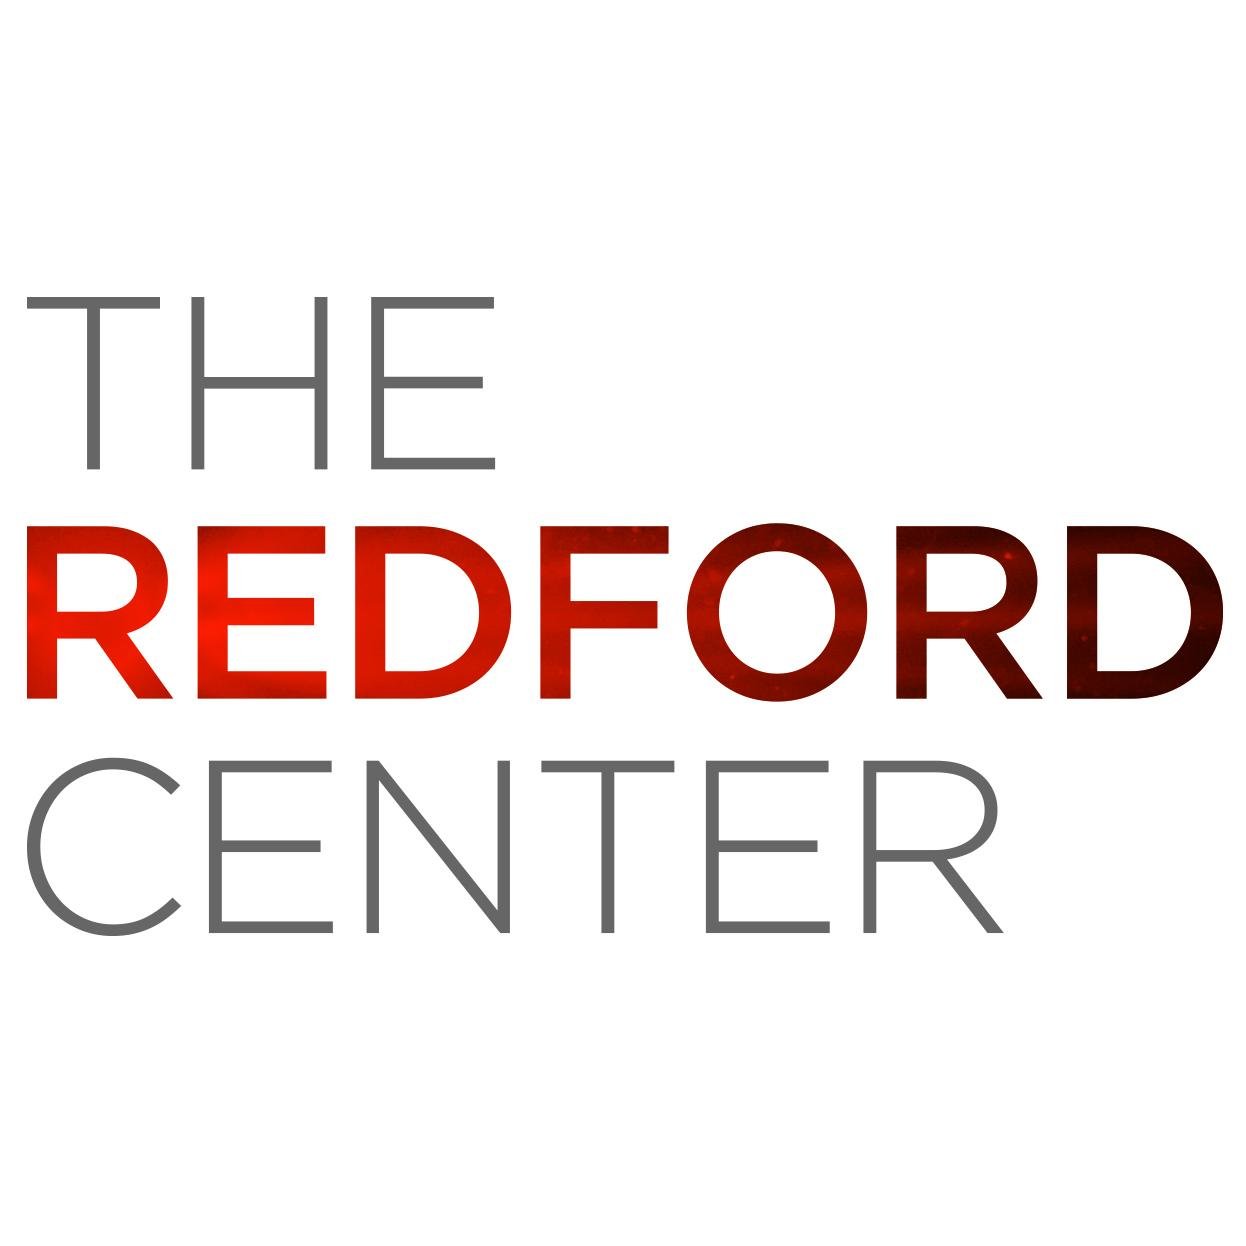 Redford Center logo